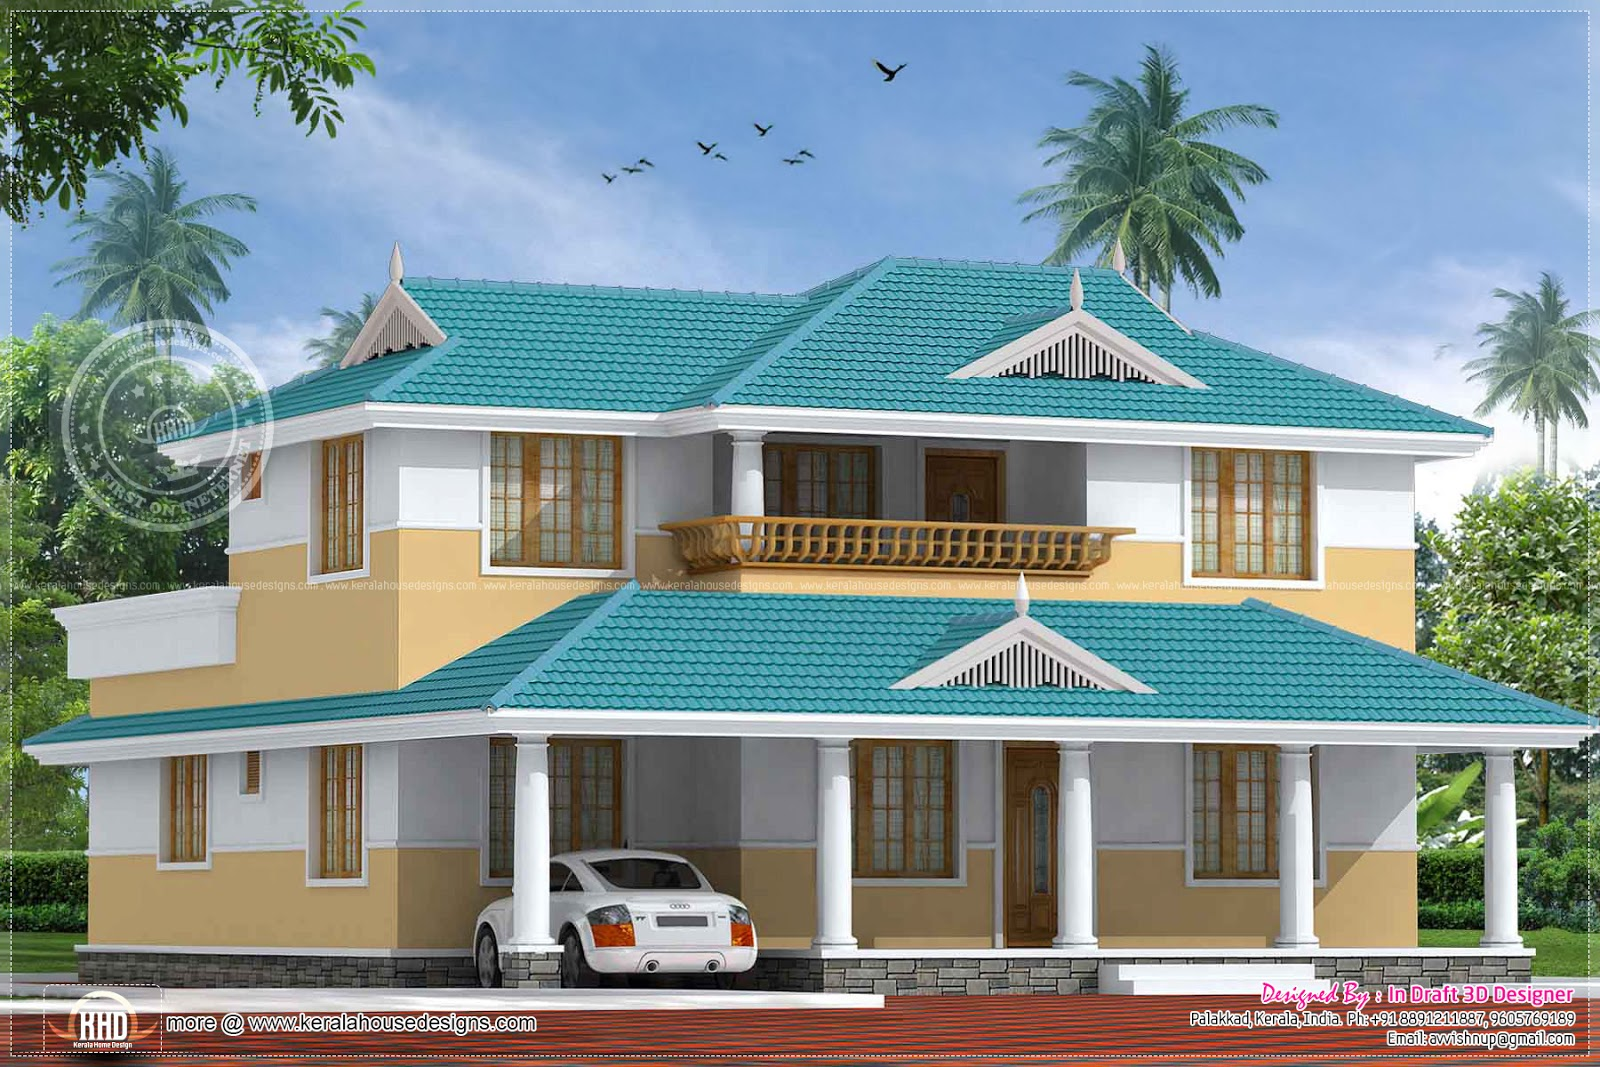 5 Bedroom Beautiful Kerala Home In 2324 Kerala Home Design And Floor Plans